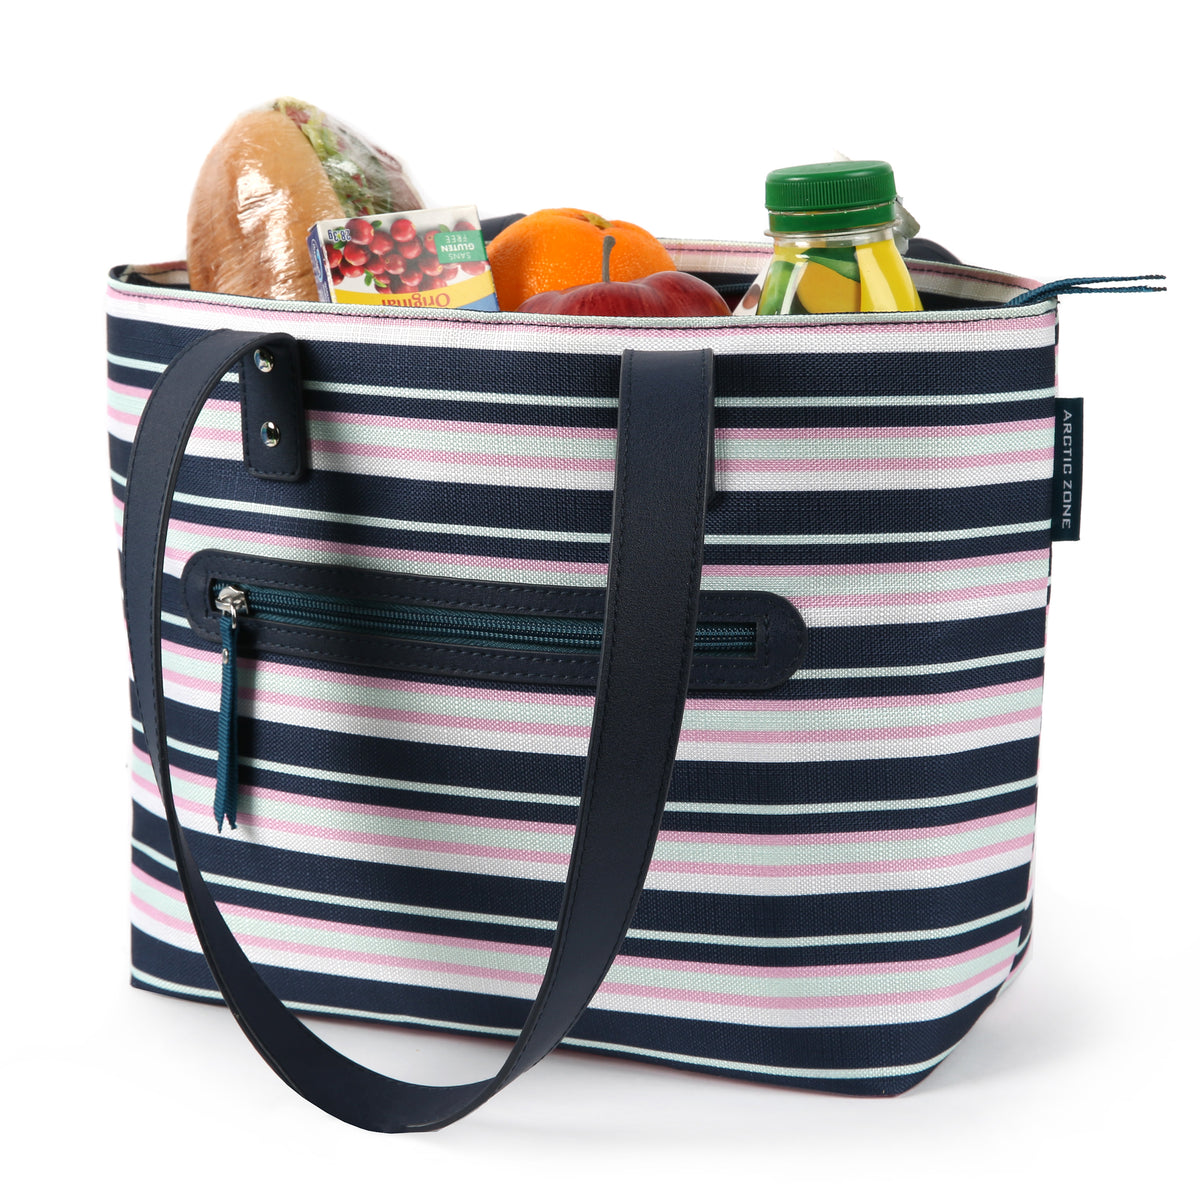 Arctic Zone® Bennet Tote - Mixed Stripes - Open, propped